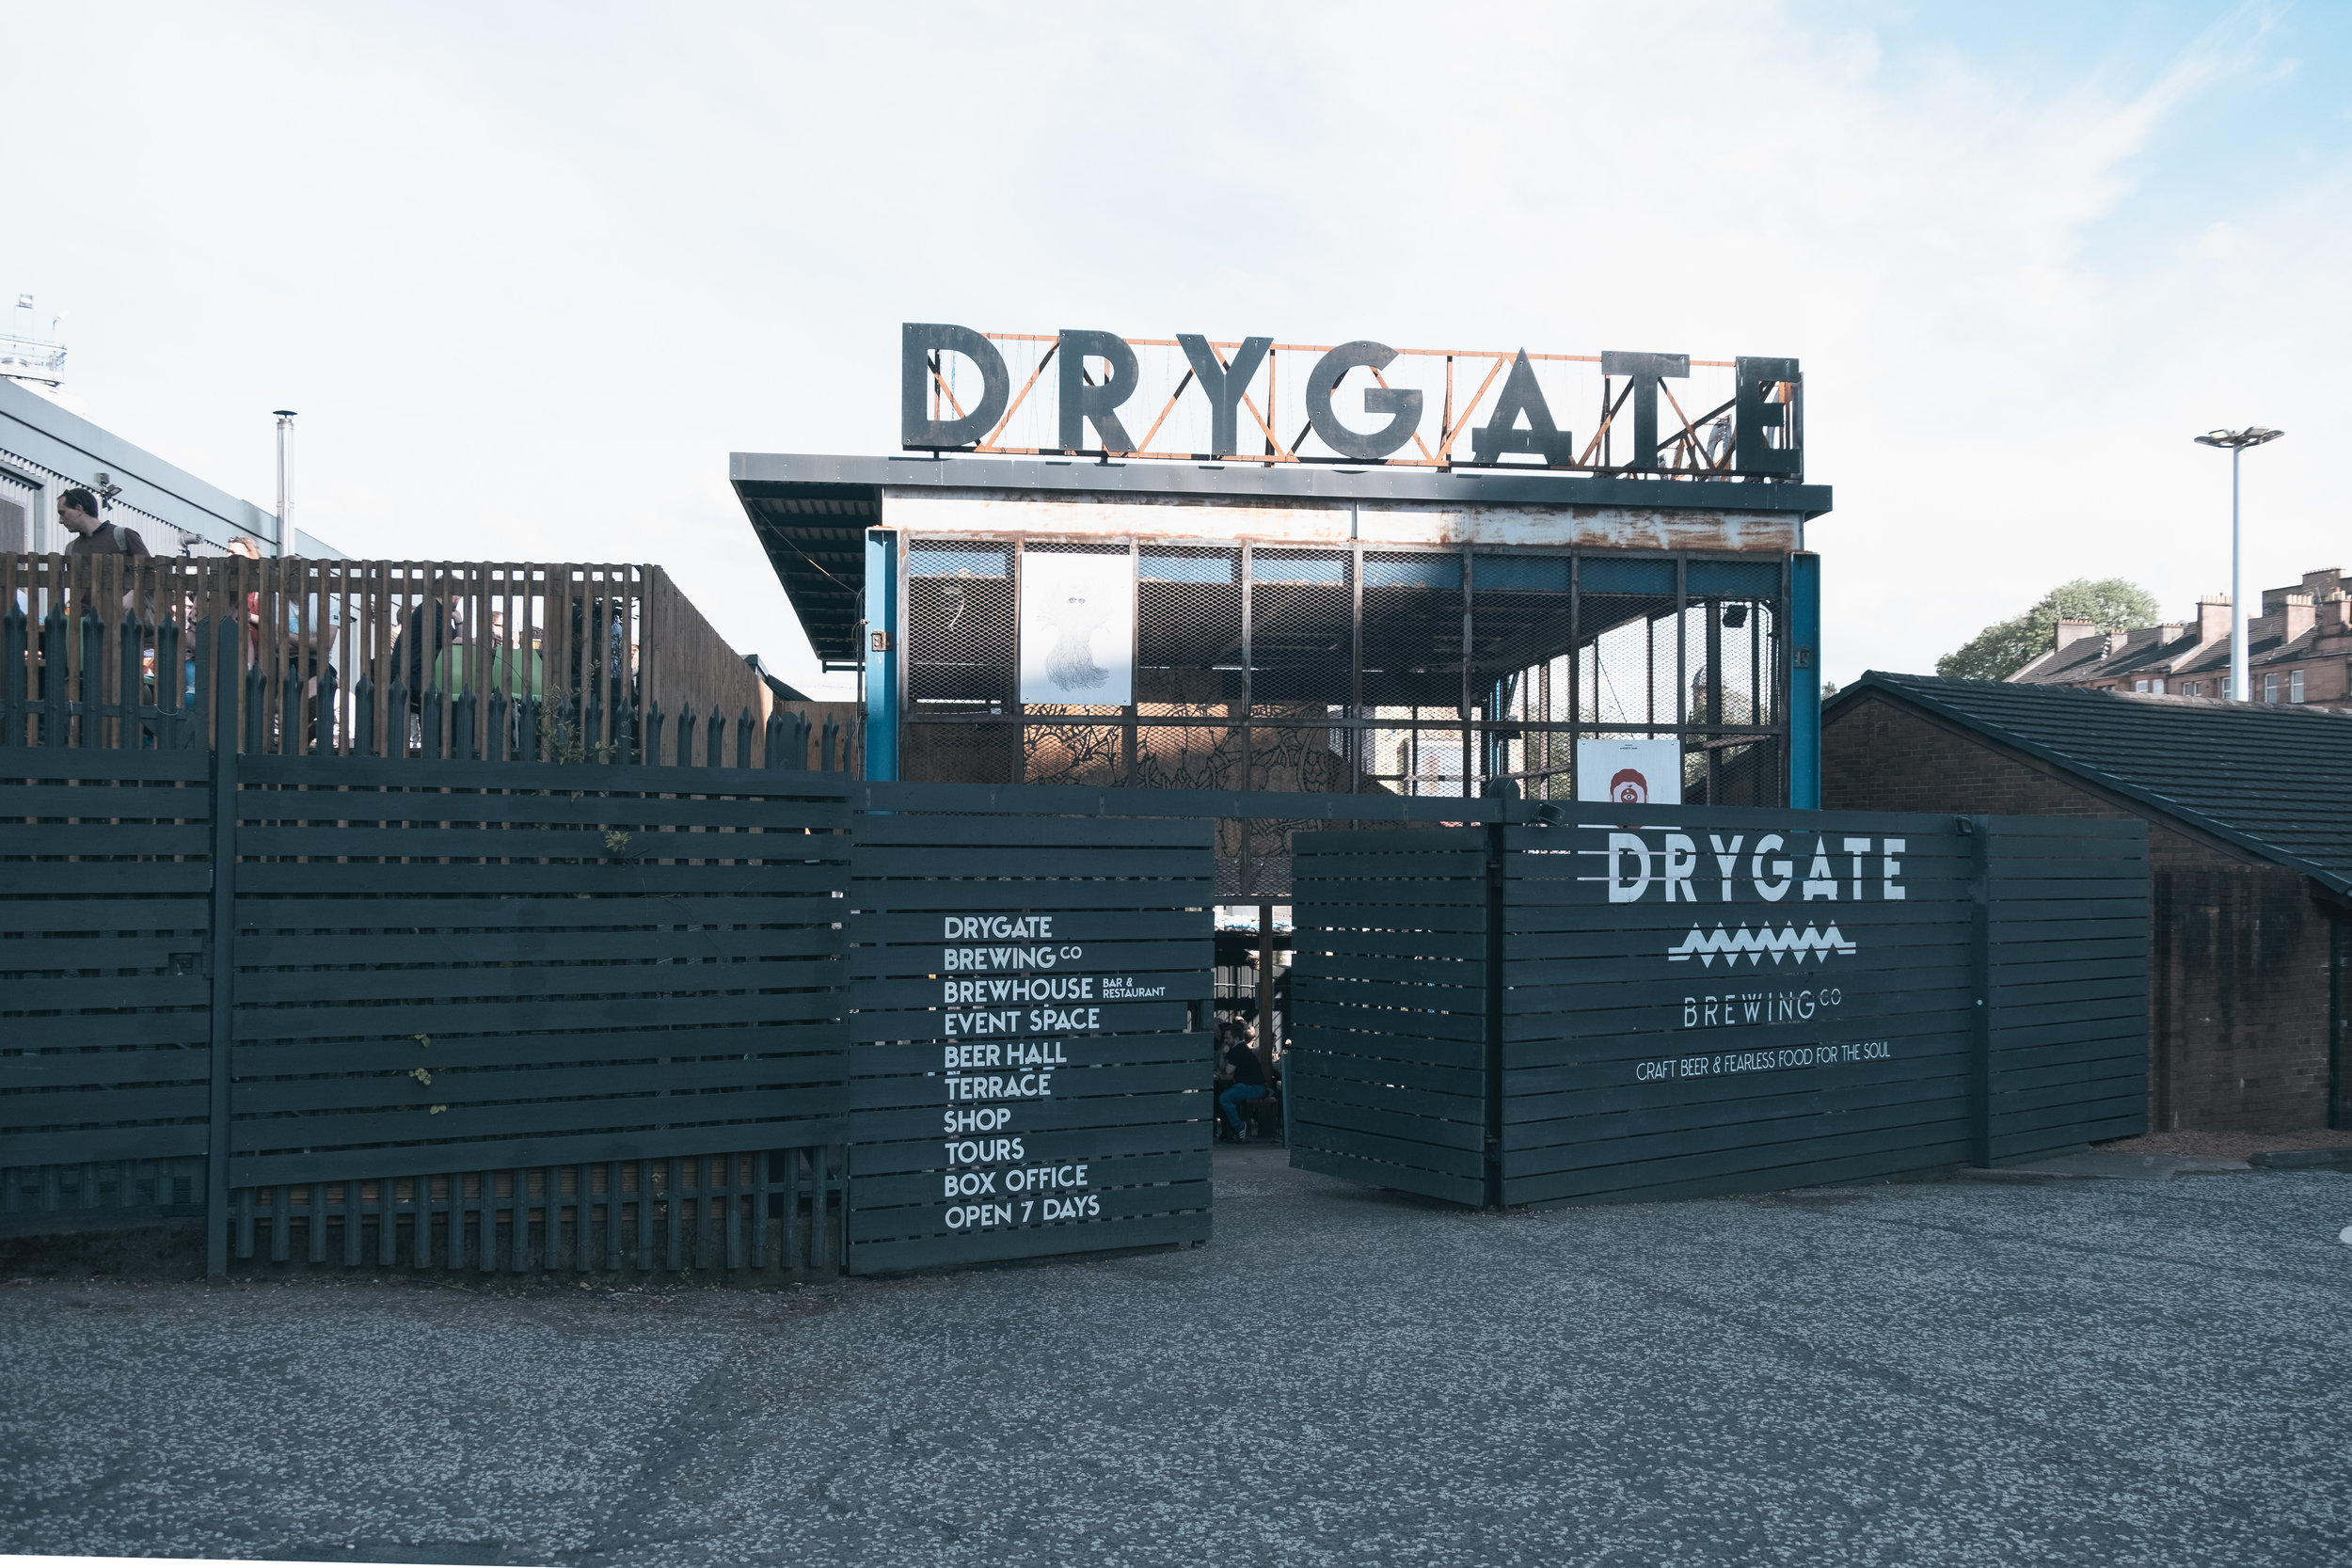 Drygate is the last stop on the guide